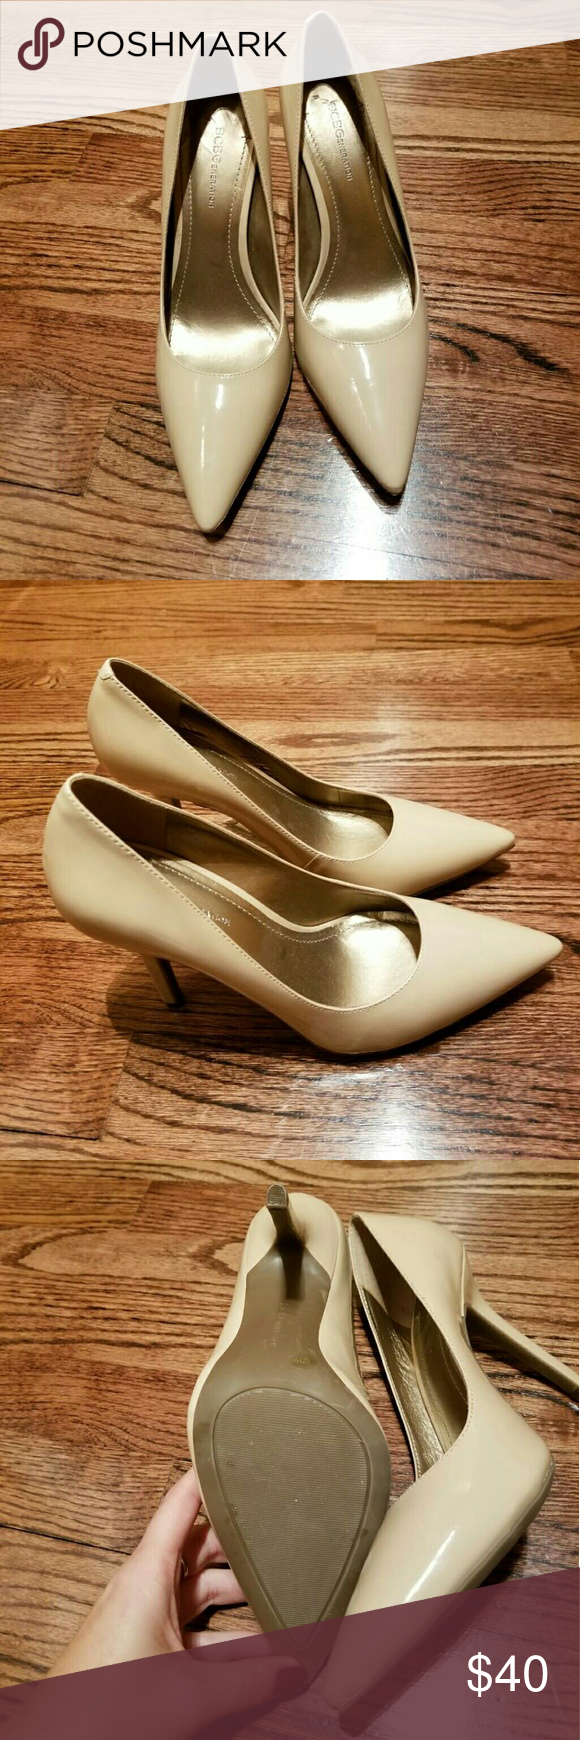 0751054e67 BCBG Heidi Classic Pointed-Toe Pumps size 9 Brand new